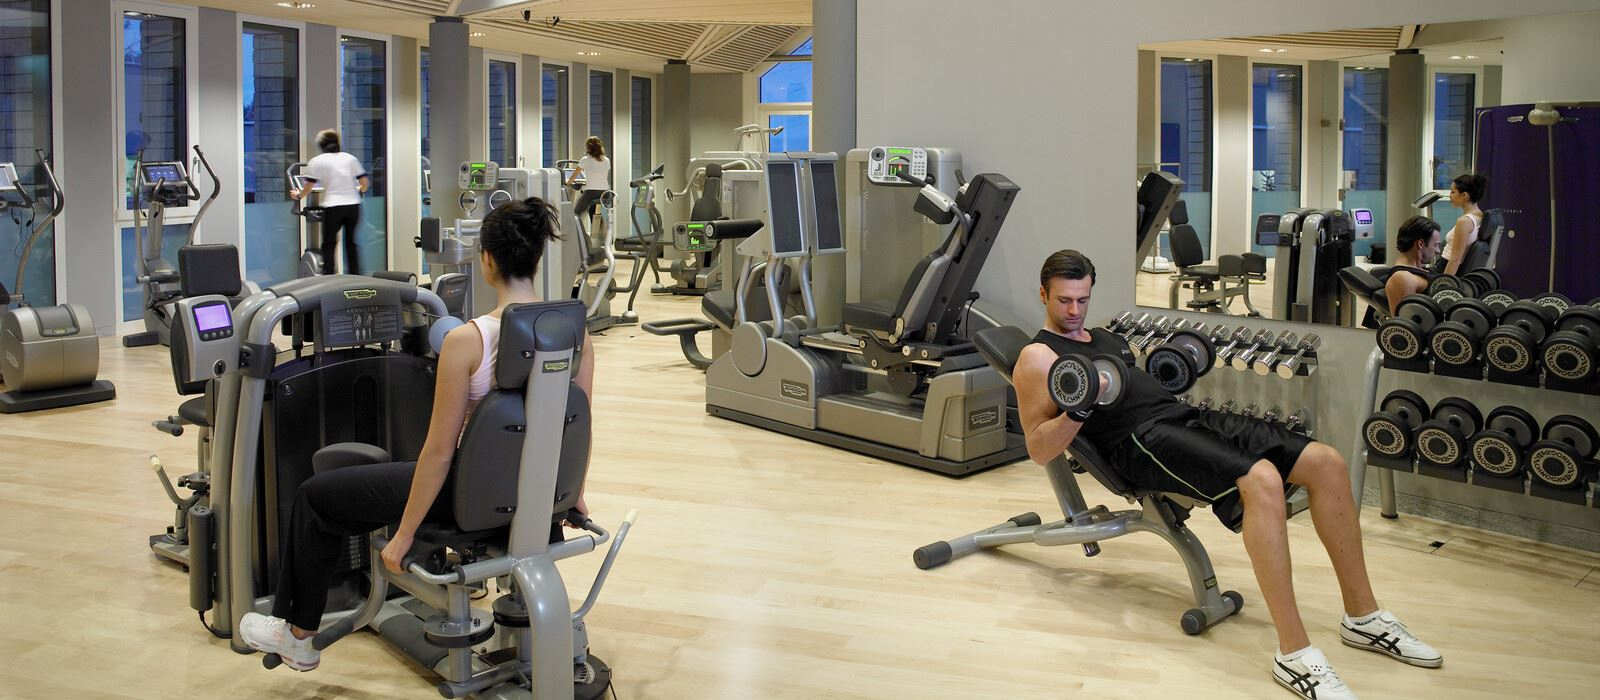 Tschuggen Grand Hotel_Wellness_Fitness